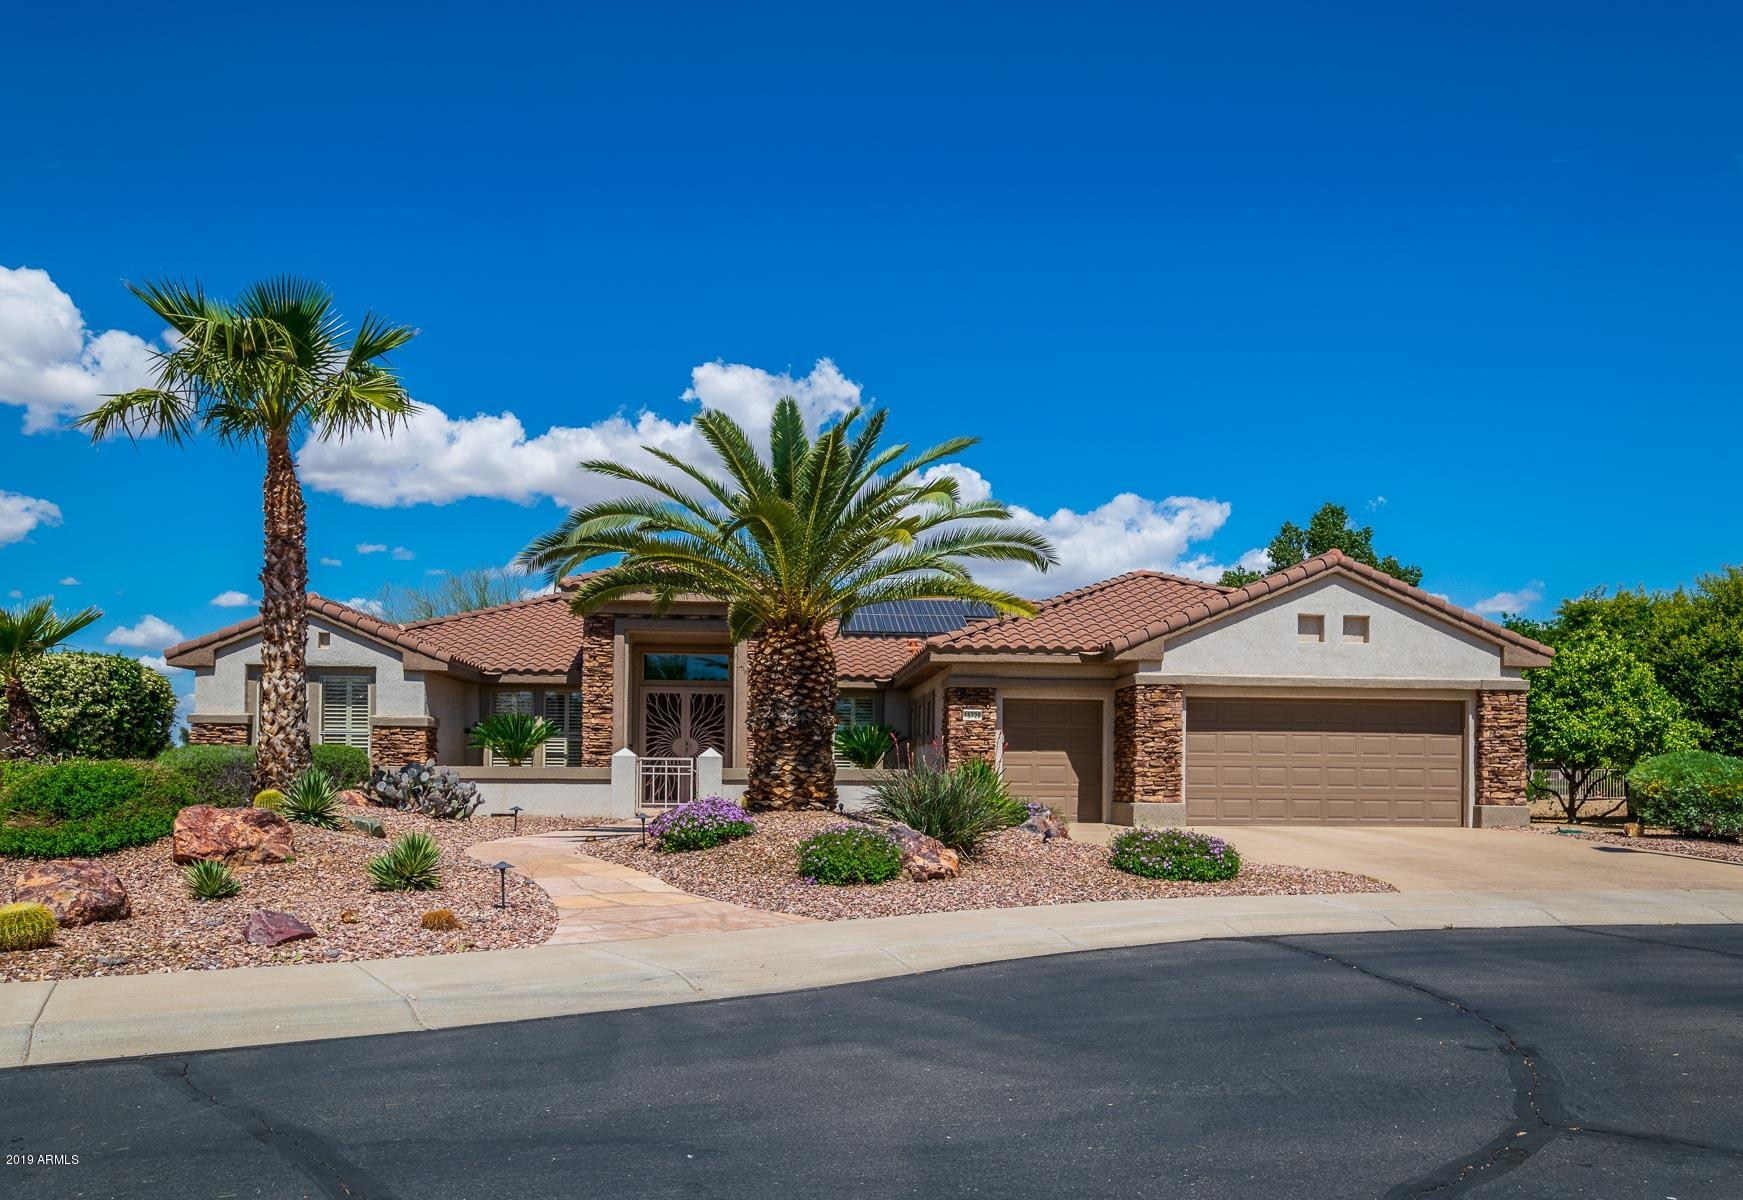 15720 W MILL VALLEY Lane, Surprise, Arizona